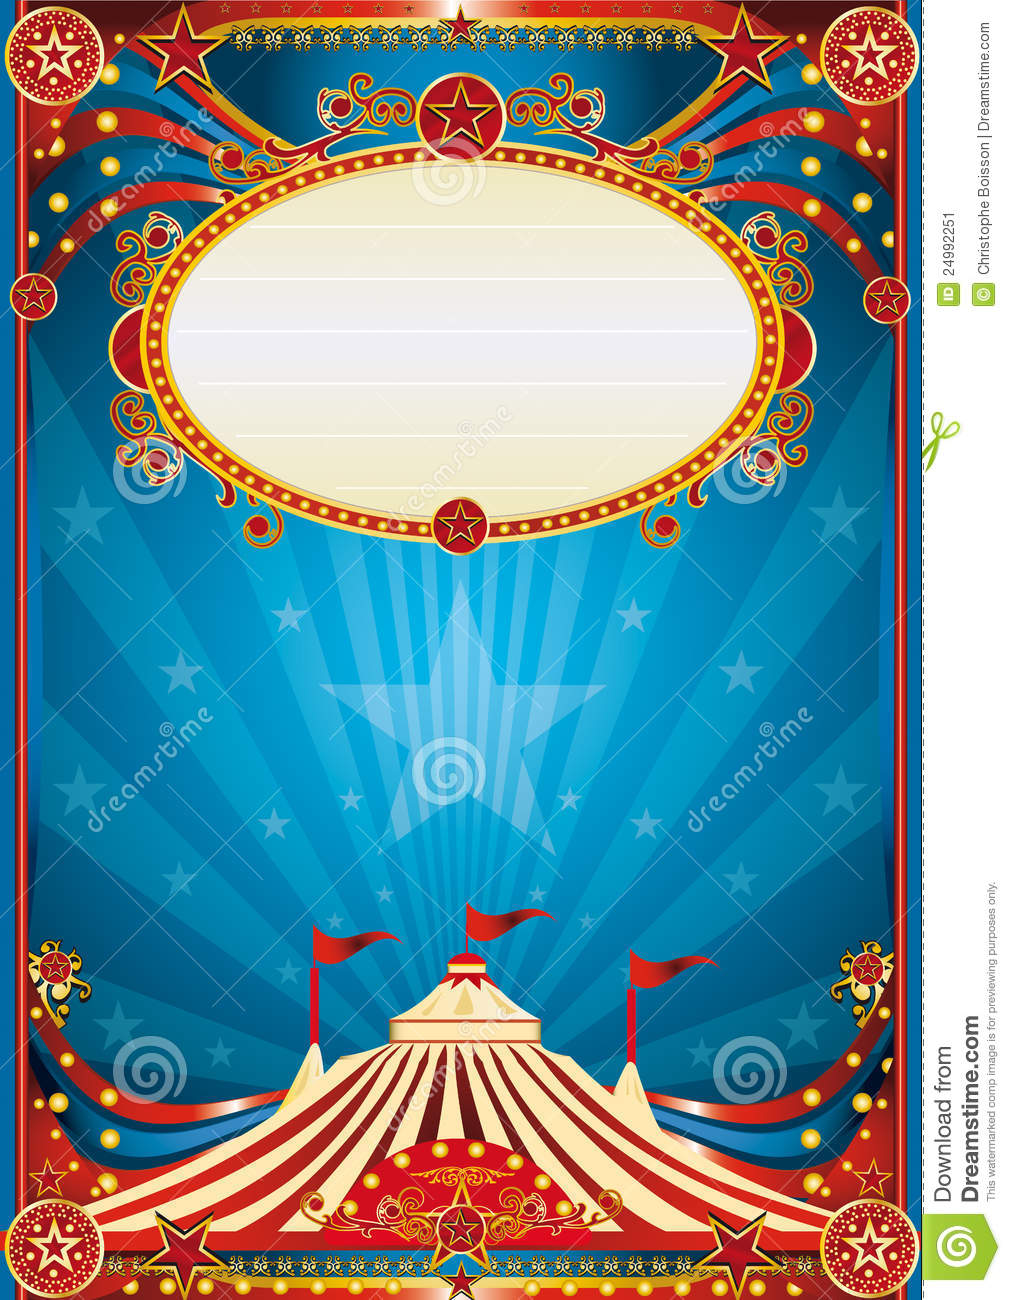 Blue circus background stock vector. Illustration of party ...